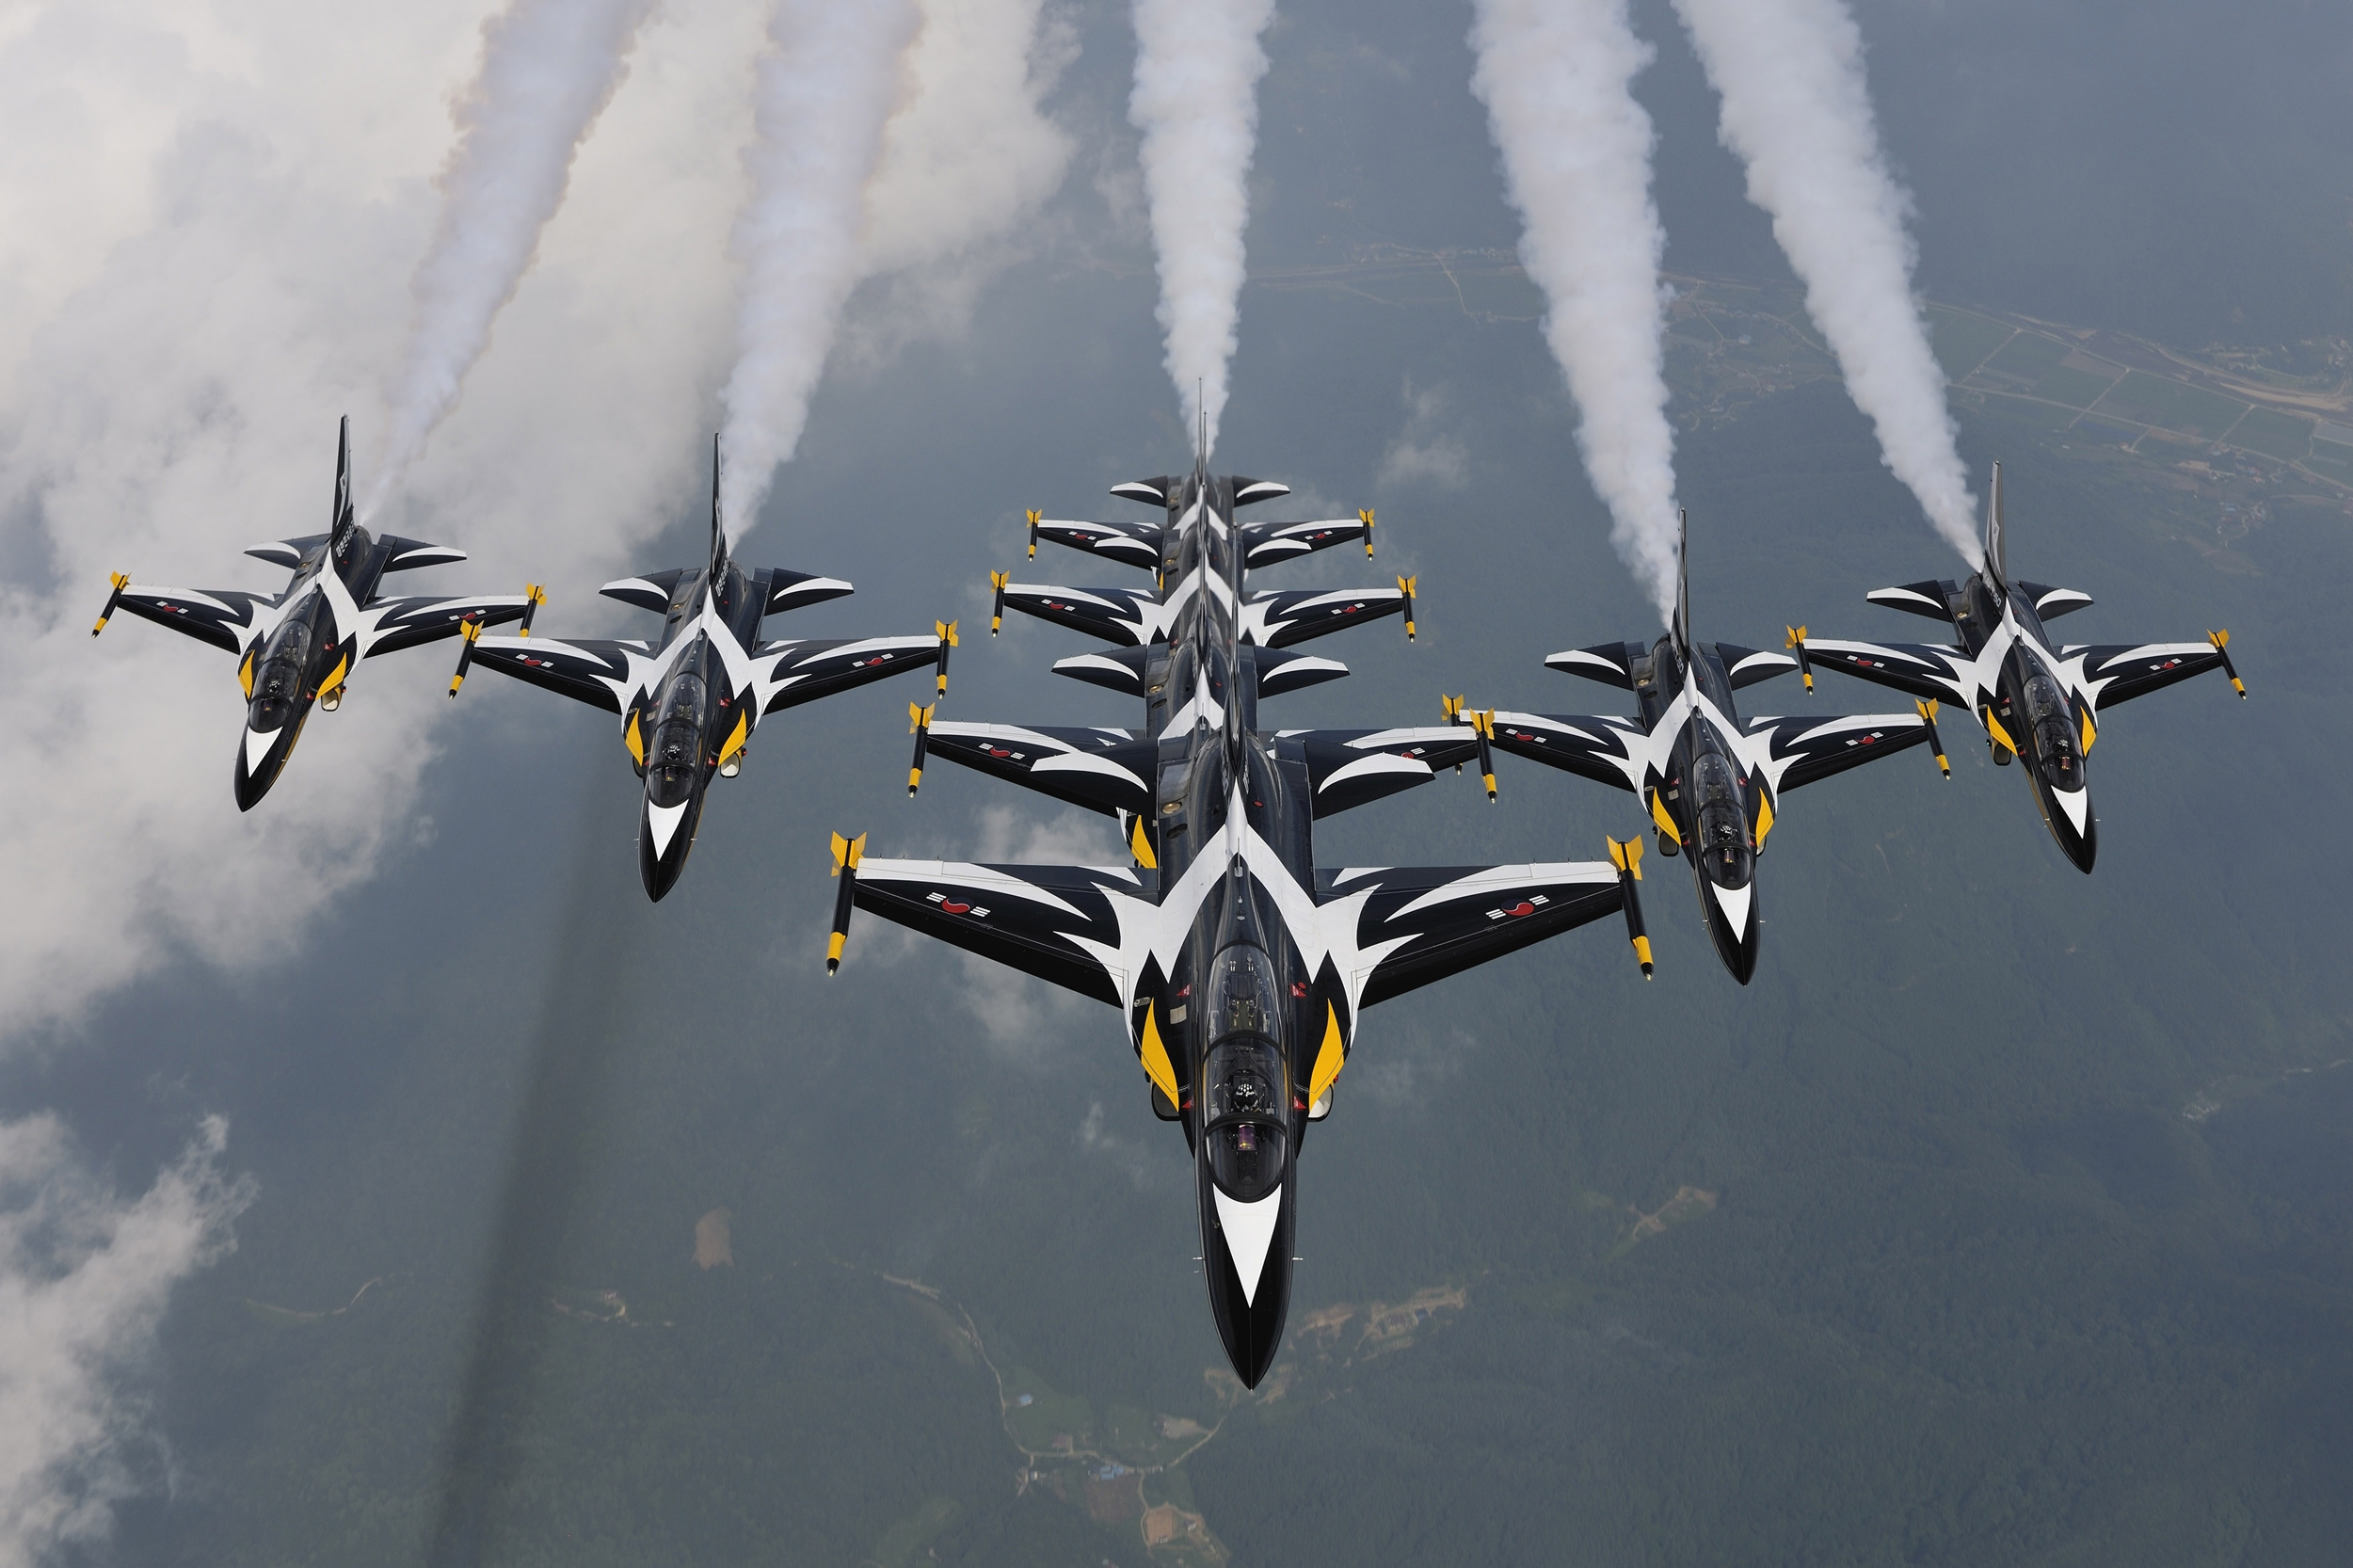 Black Eagles aerobatic team - Wikipedia